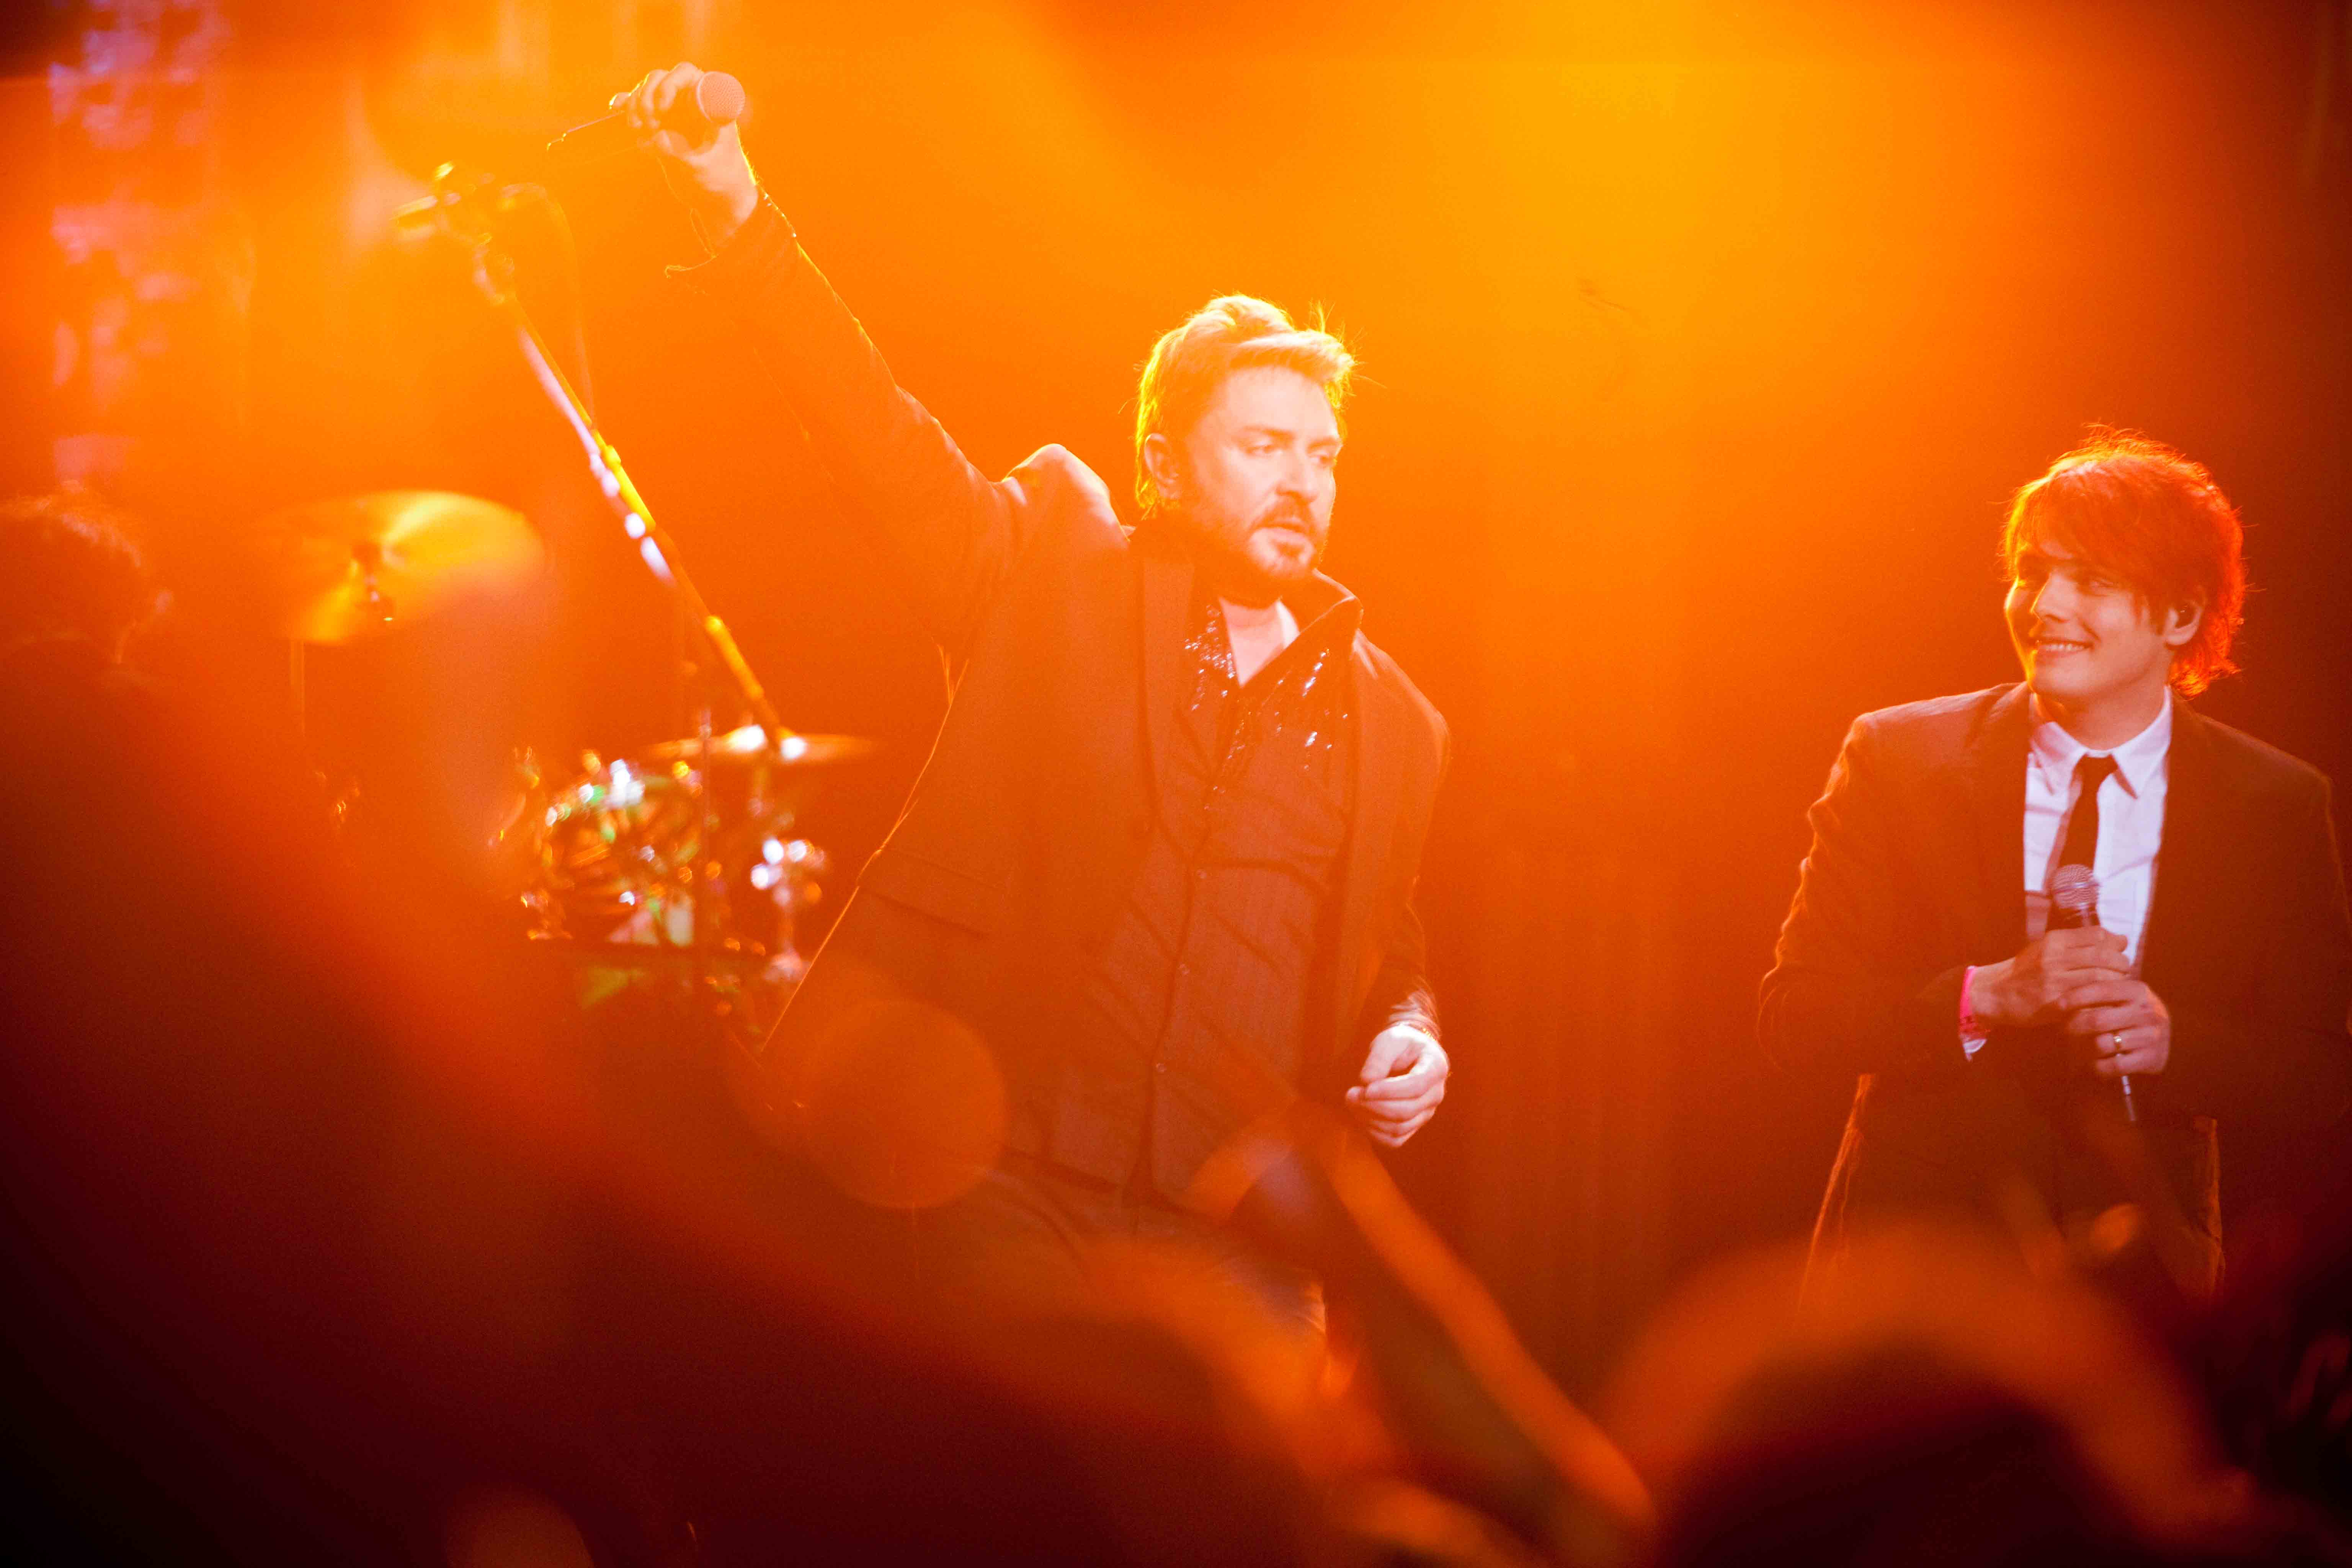 Duran Duran: Unstaged, Simon Le Bon e Gerard Way sul palco in un'immagine del documentario